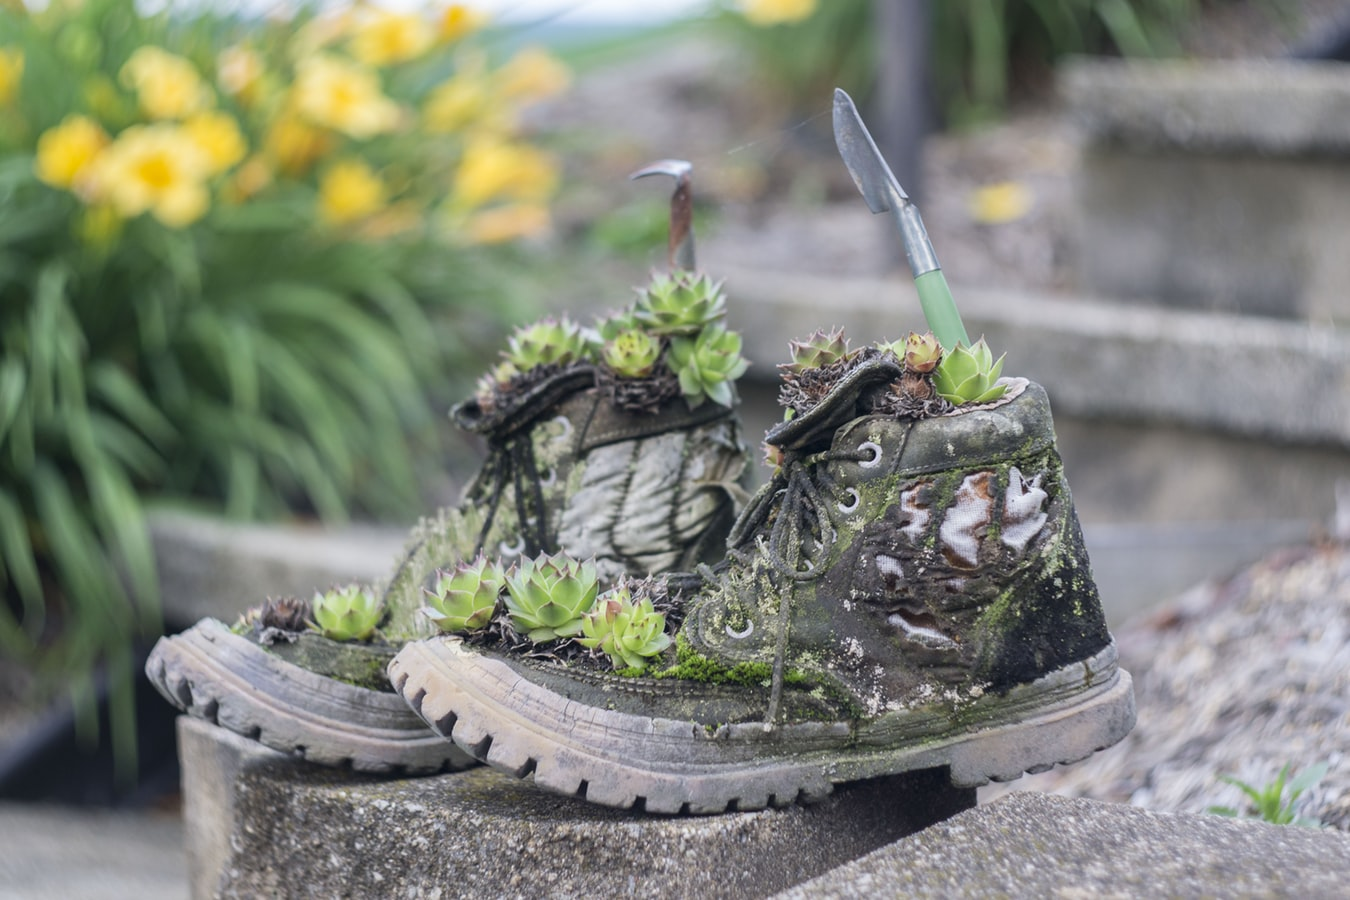 Boots with plants growing on them